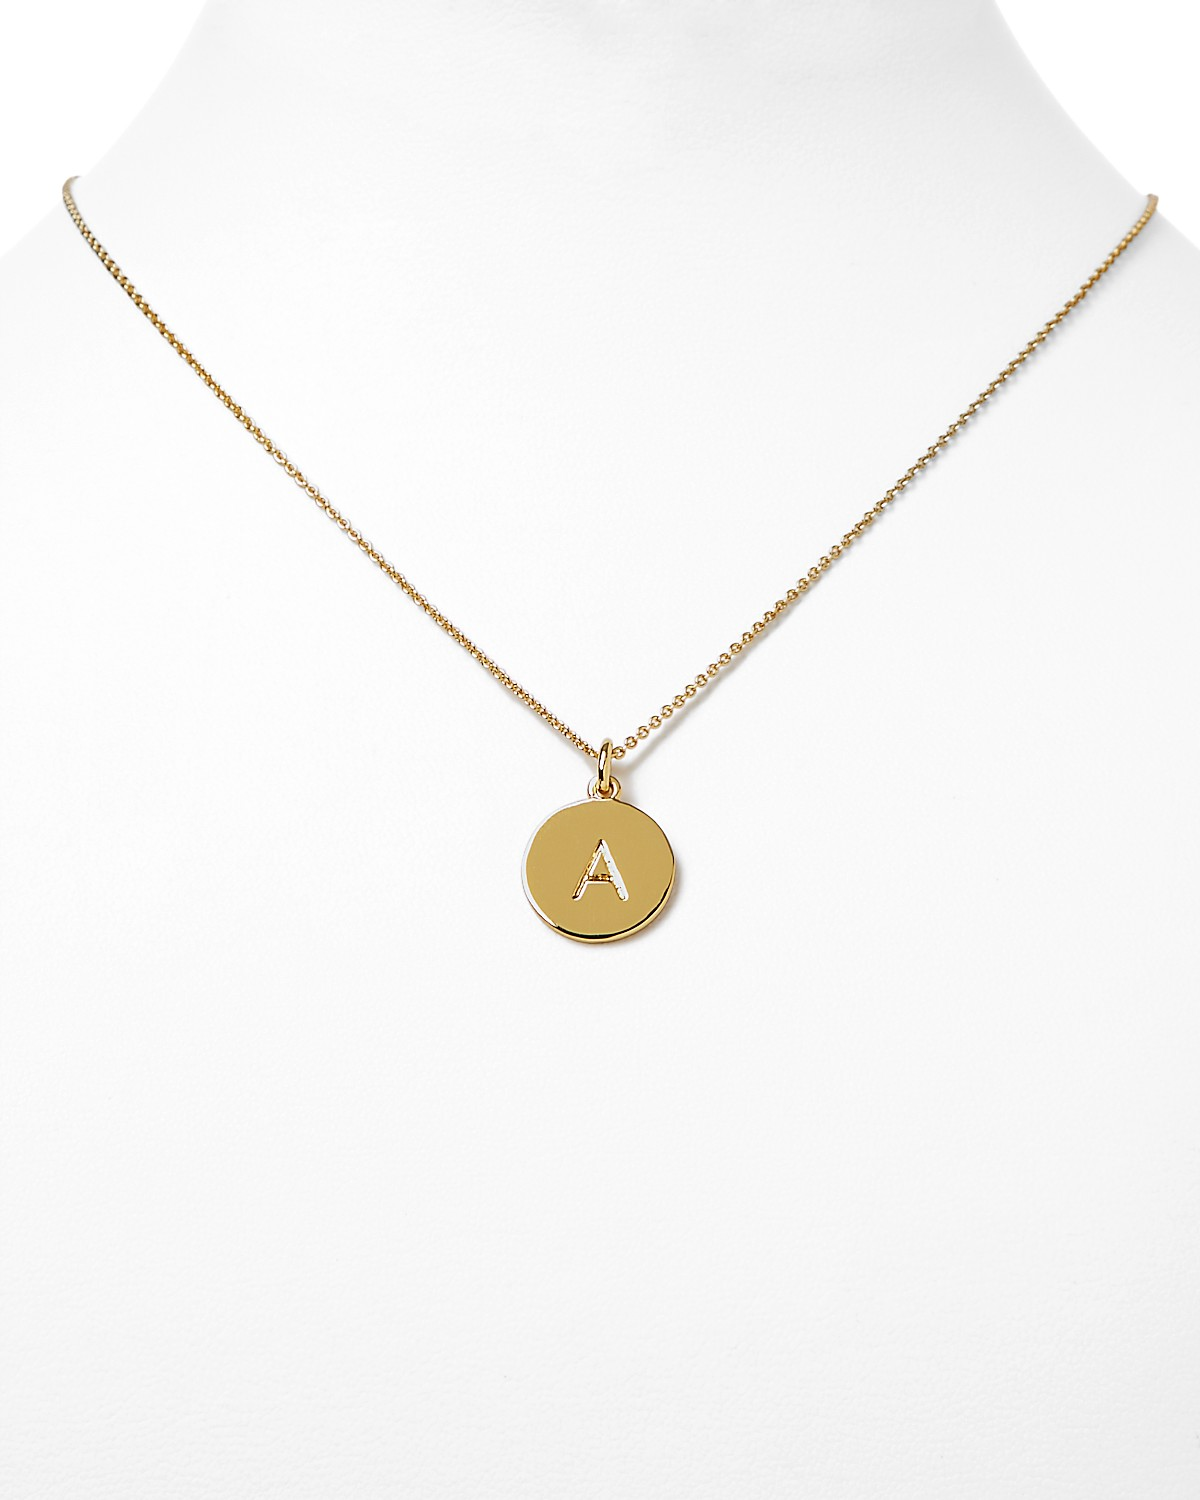 strand necklace inital gold and up diamond lev pendant products initial zoe chain stone close